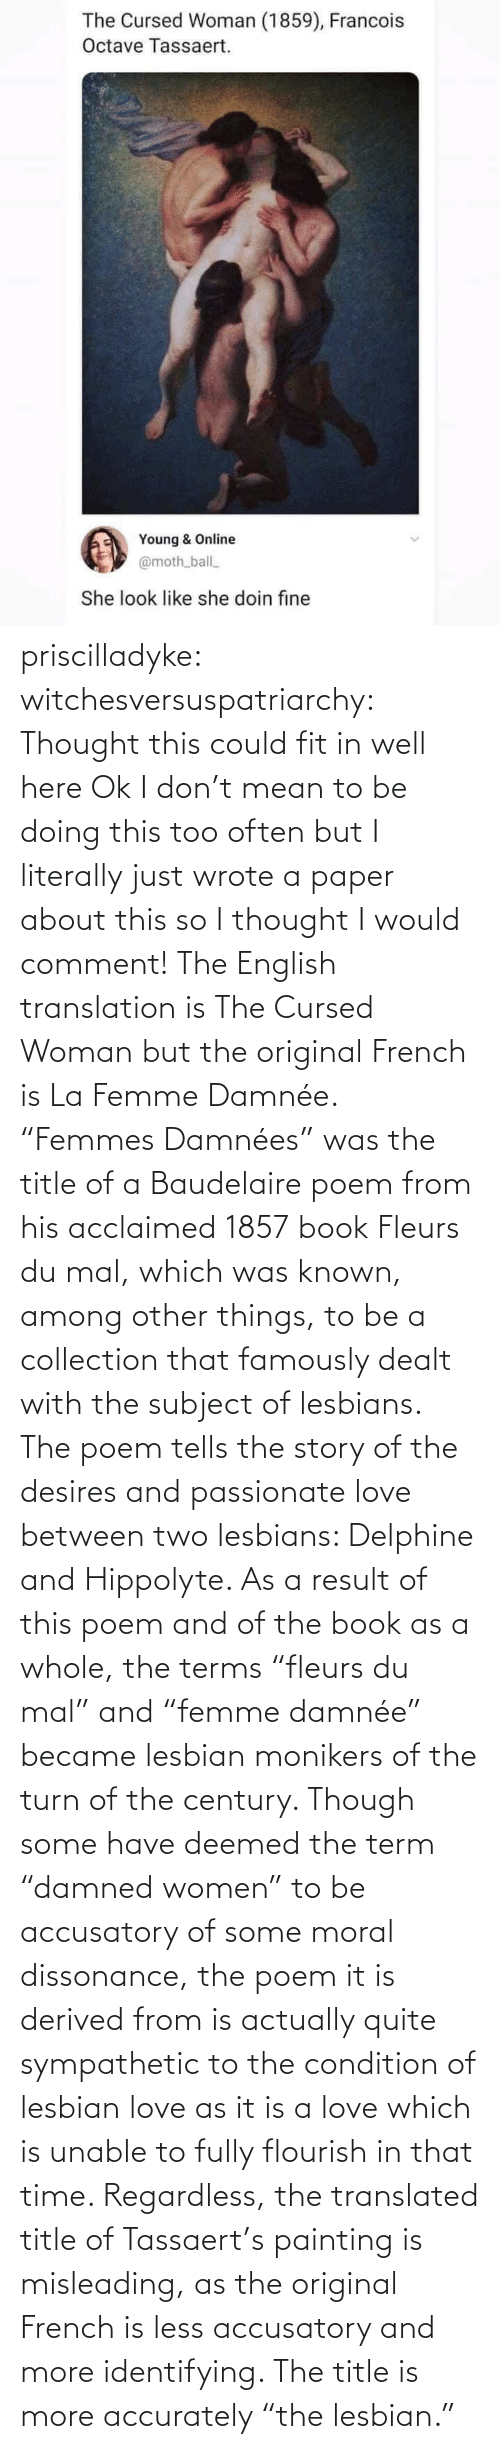 "English: priscilladyke:  witchesversuspatriarchy: Thought this could fit in well here   Ok I don't mean to be doing this too often but I literally just wrote a paper about this so I thought I would comment! The English translation is The Cursed Woman but the original French is La Femme Damnée. ""Femmes Damnées"" was the title of a Baudelaire poem from his acclaimed 1857 book Fleurs du mal, which was known, among other things, to be a collection that famously dealt with the subject of lesbians. The poem tells the story of the desires and passionate love between two lesbians:  Delphine and Hippolyte. As a result of this poem and of the book as a whole, the terms ""fleurs du mal"" and ""femme damnée"" became lesbian monikers of the turn of the century. Though some have deemed the term ""damned women"" to be accusatory of some moral dissonance, the poem it is derived from is actually quite sympathetic to the condition of lesbian love as it is a love which is unable to fully flourish in that time. Regardless, the translated title of Tassaert's painting is misleading, as the original French is less accusatory and more identifying. The title is more accurately ""the lesbian."""